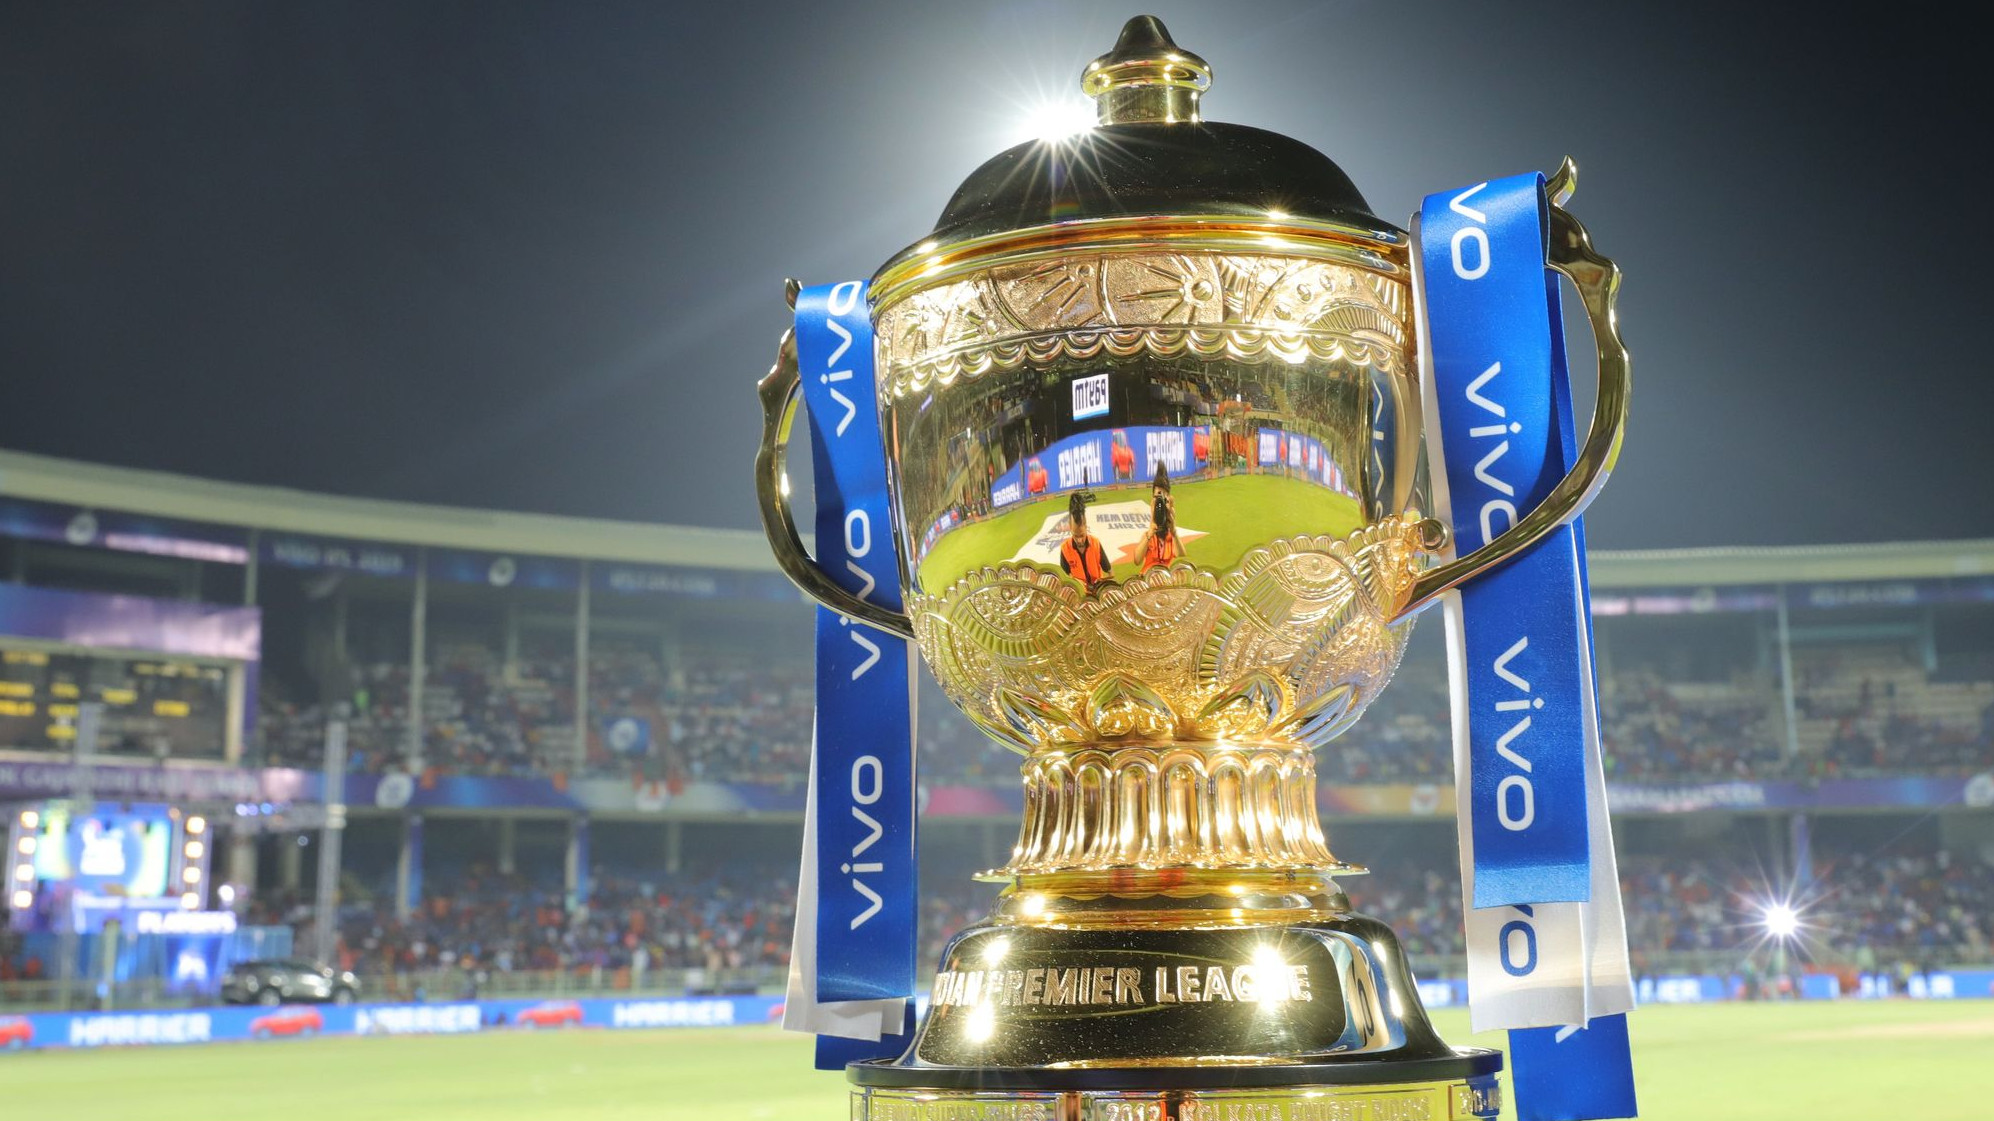 IPL 2021: Maharashtra government grants IPL teams permission to practice beyond 8 pm at Wankhede Stadium